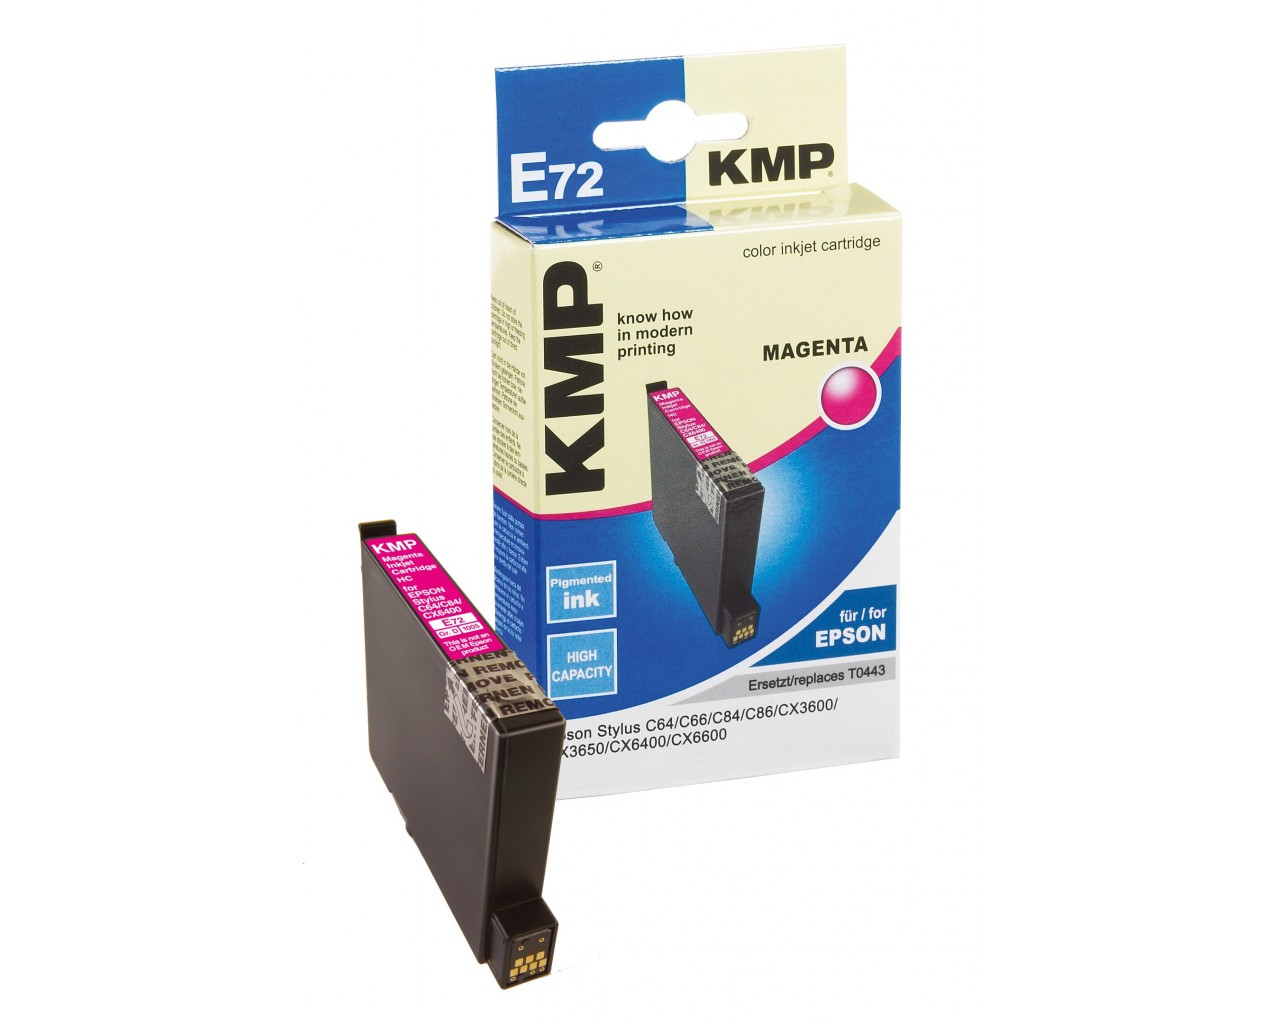 KMP Epson E72 ink cartridge magenta 13ml